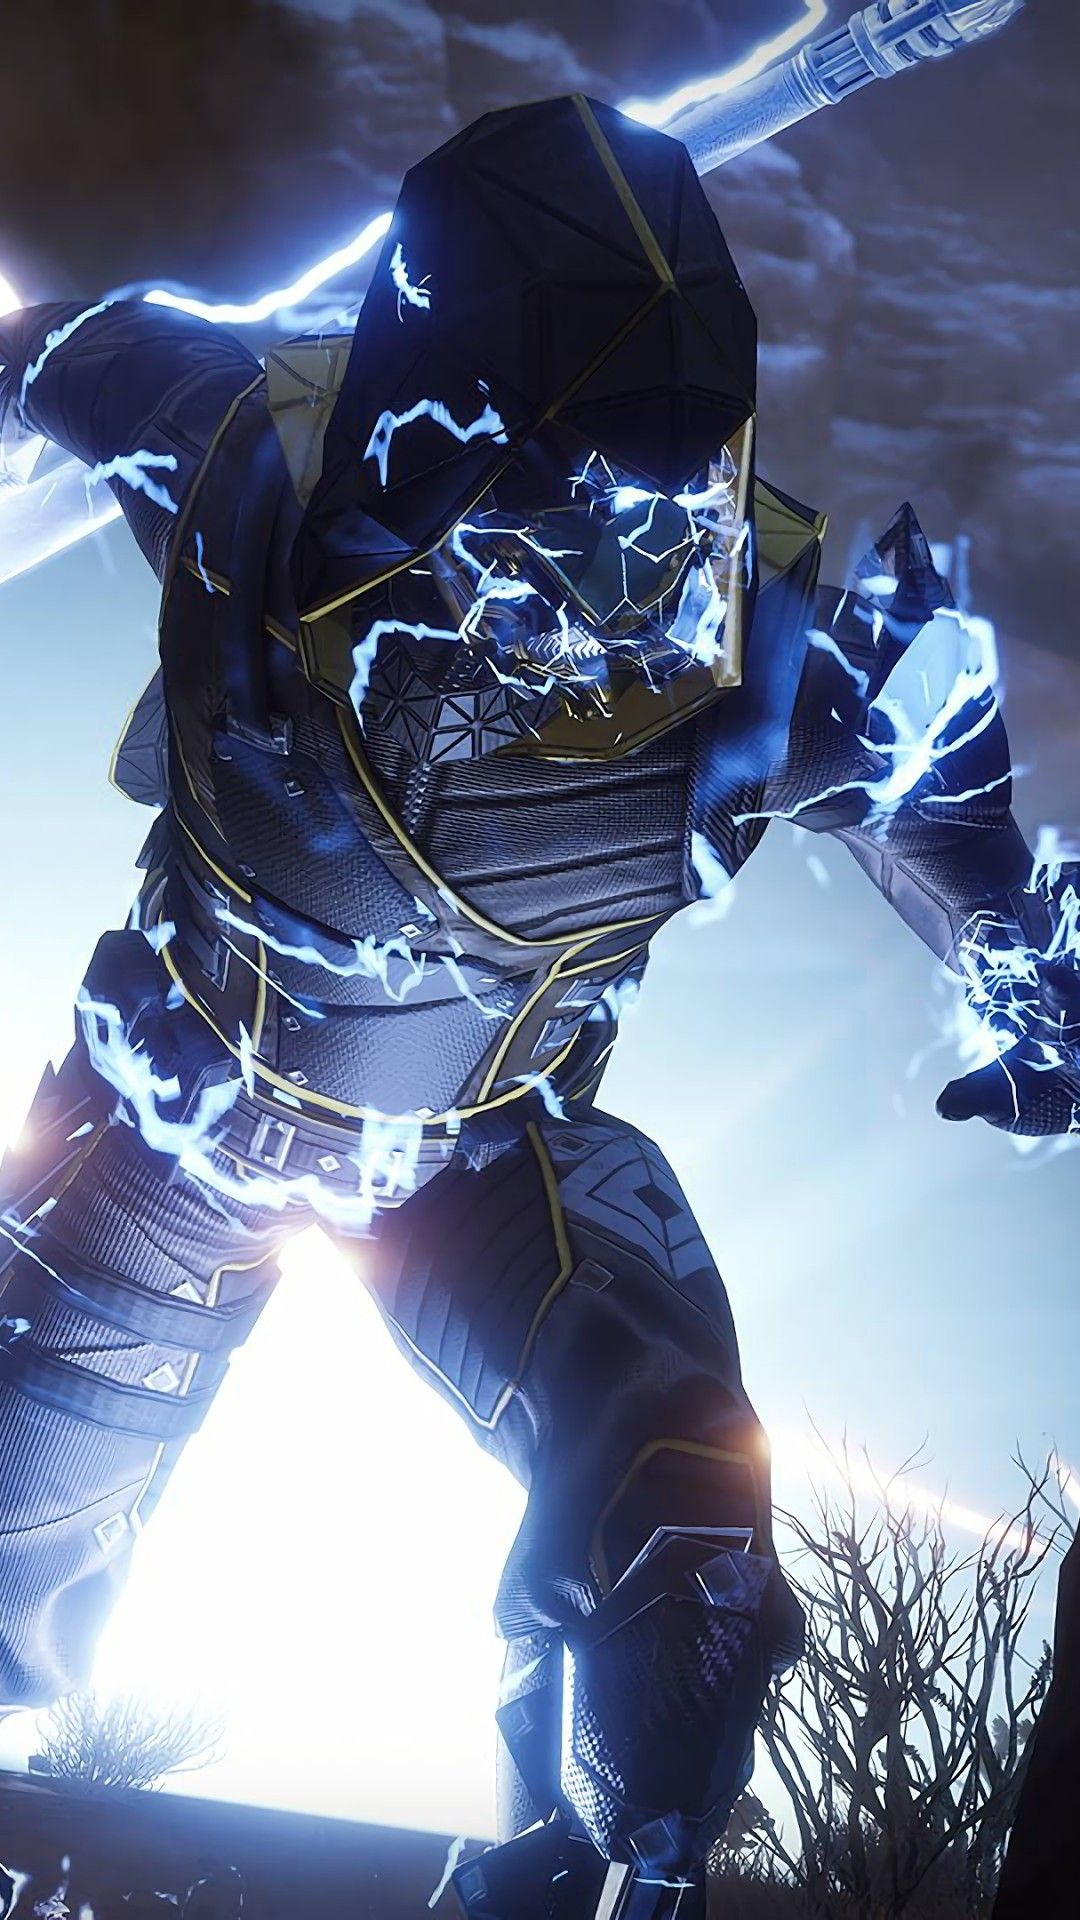 Destiny 2 Forsaken Image Hupages Download Iphone Wallpapers Destiny Phone Backgrounds Cool Wallpapers For Phones